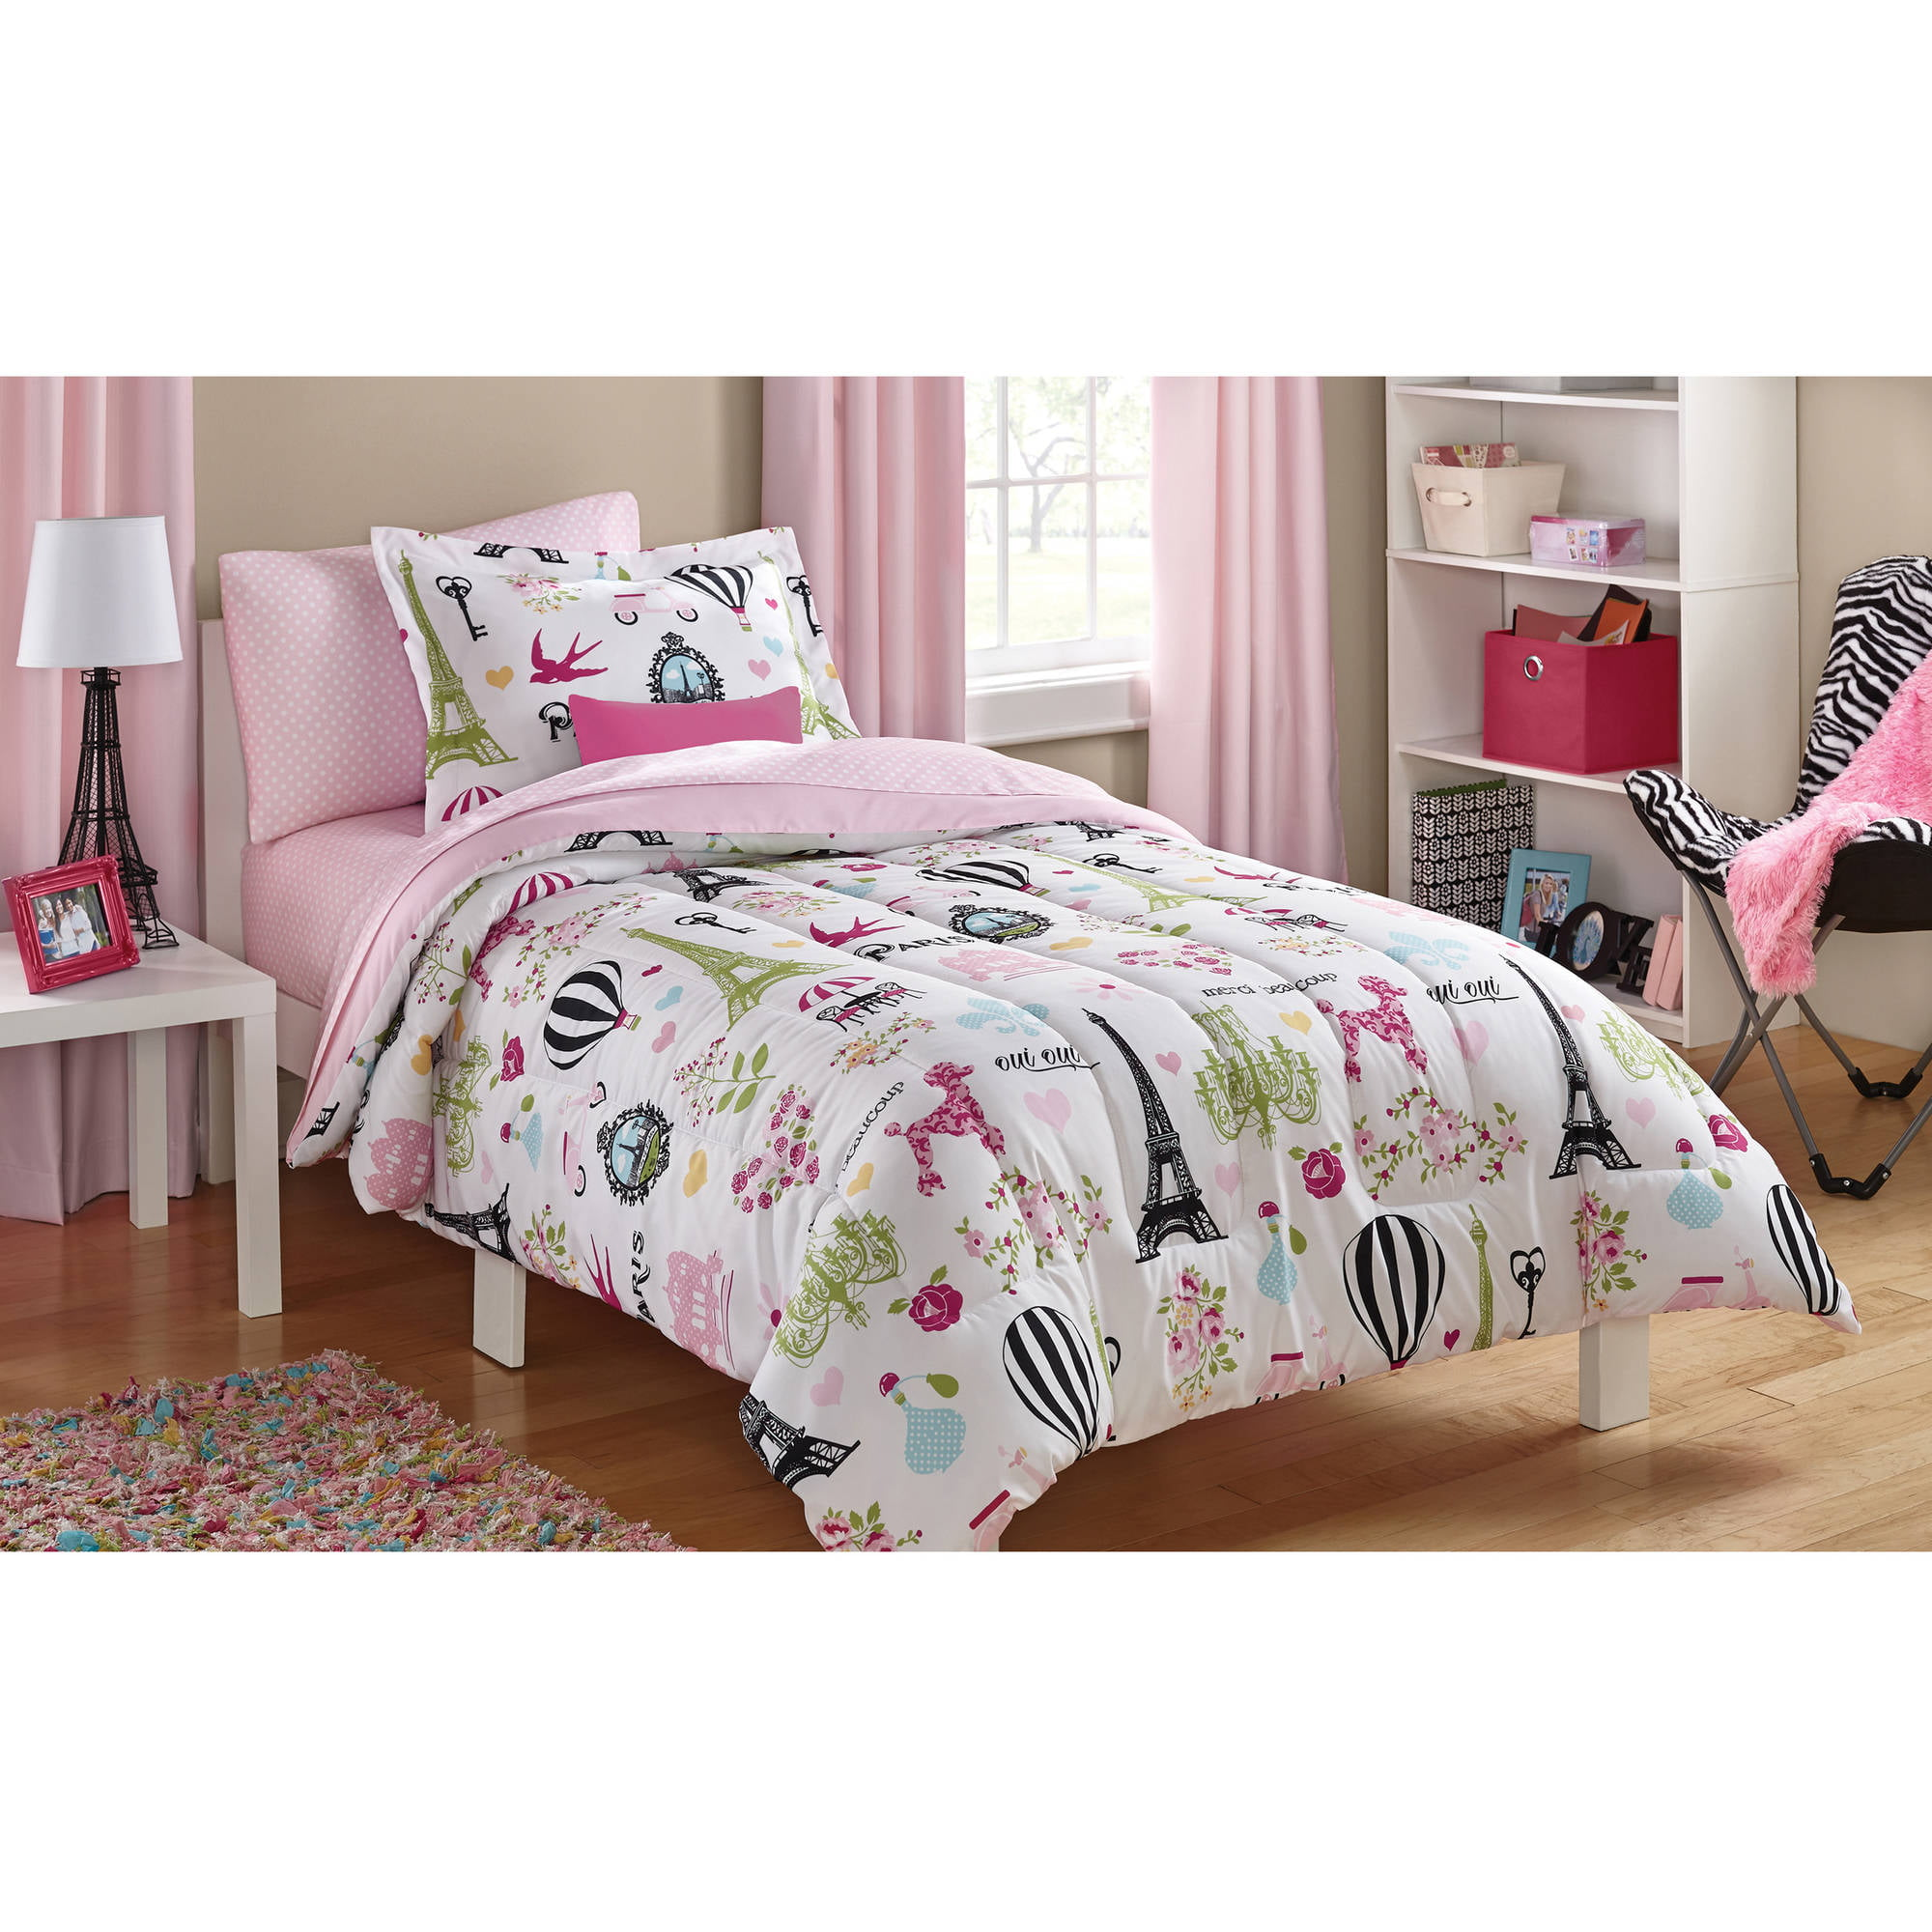 Mainstays Kids Paris Bed in a Bag Bedding Set Walmart